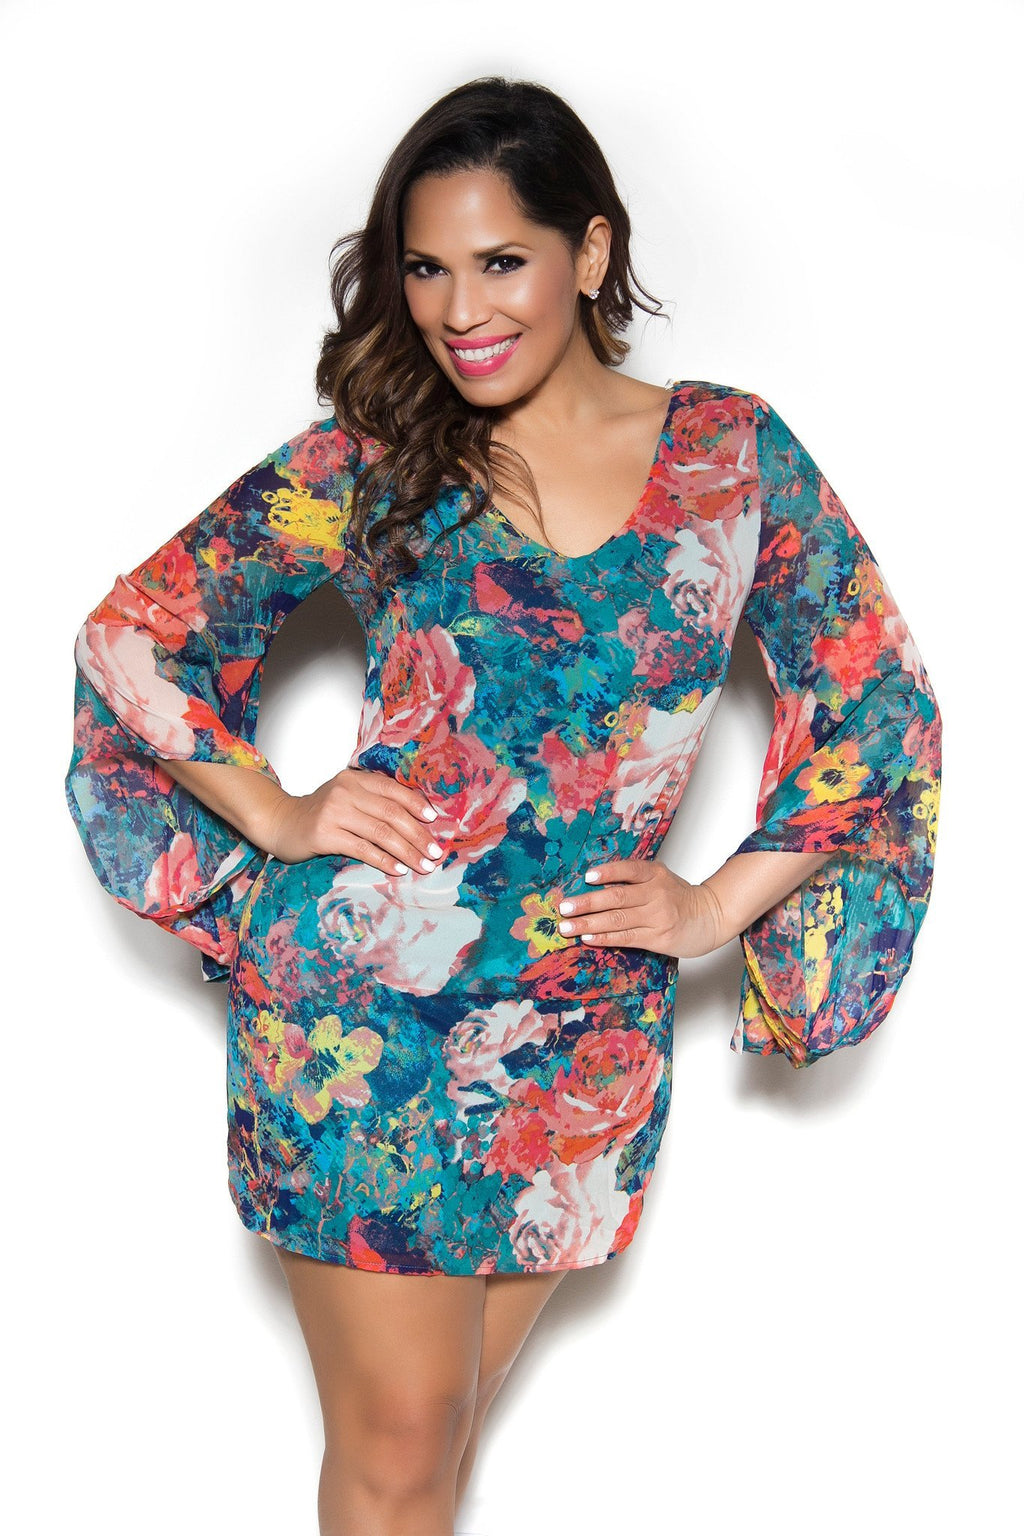 Long Sleeved Teal Flower Print Chiffon Dress - MY SEXY STYLES